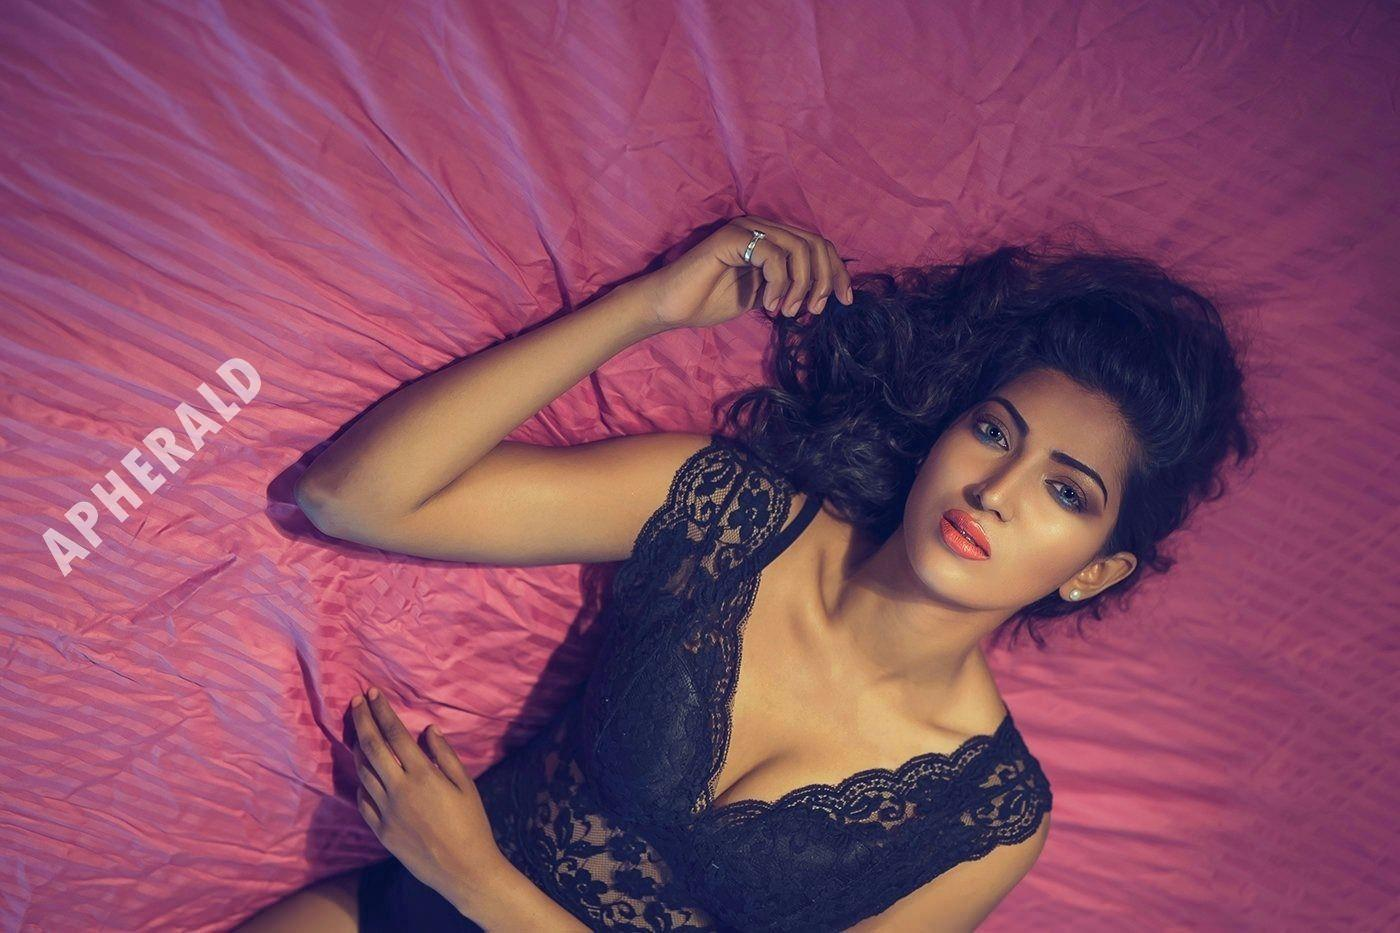 Disha Krishnaiah Latest Hot & Sexy Photo Stills